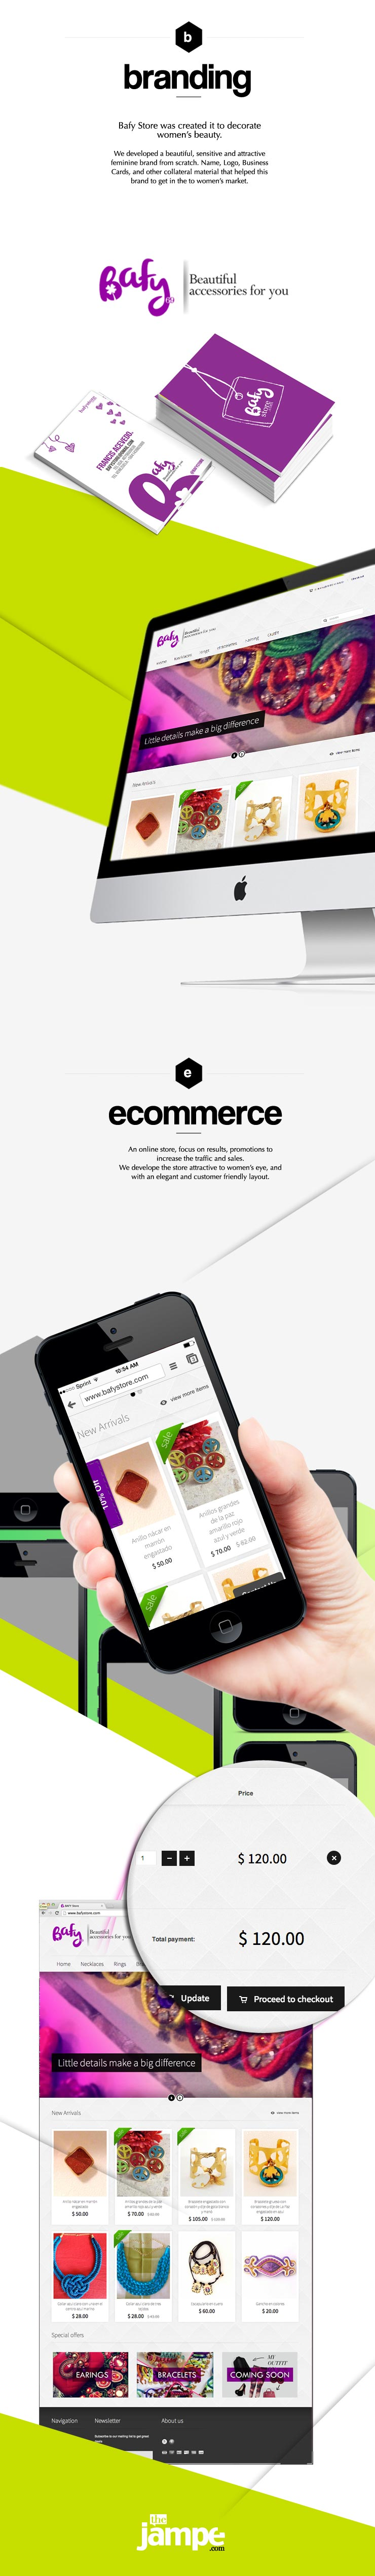 e-commerce-online-store-pay-pal-shopify-accesories-women-the-jampe-florida-advertising-agency-web-site-design-SEO-SEM-social-media